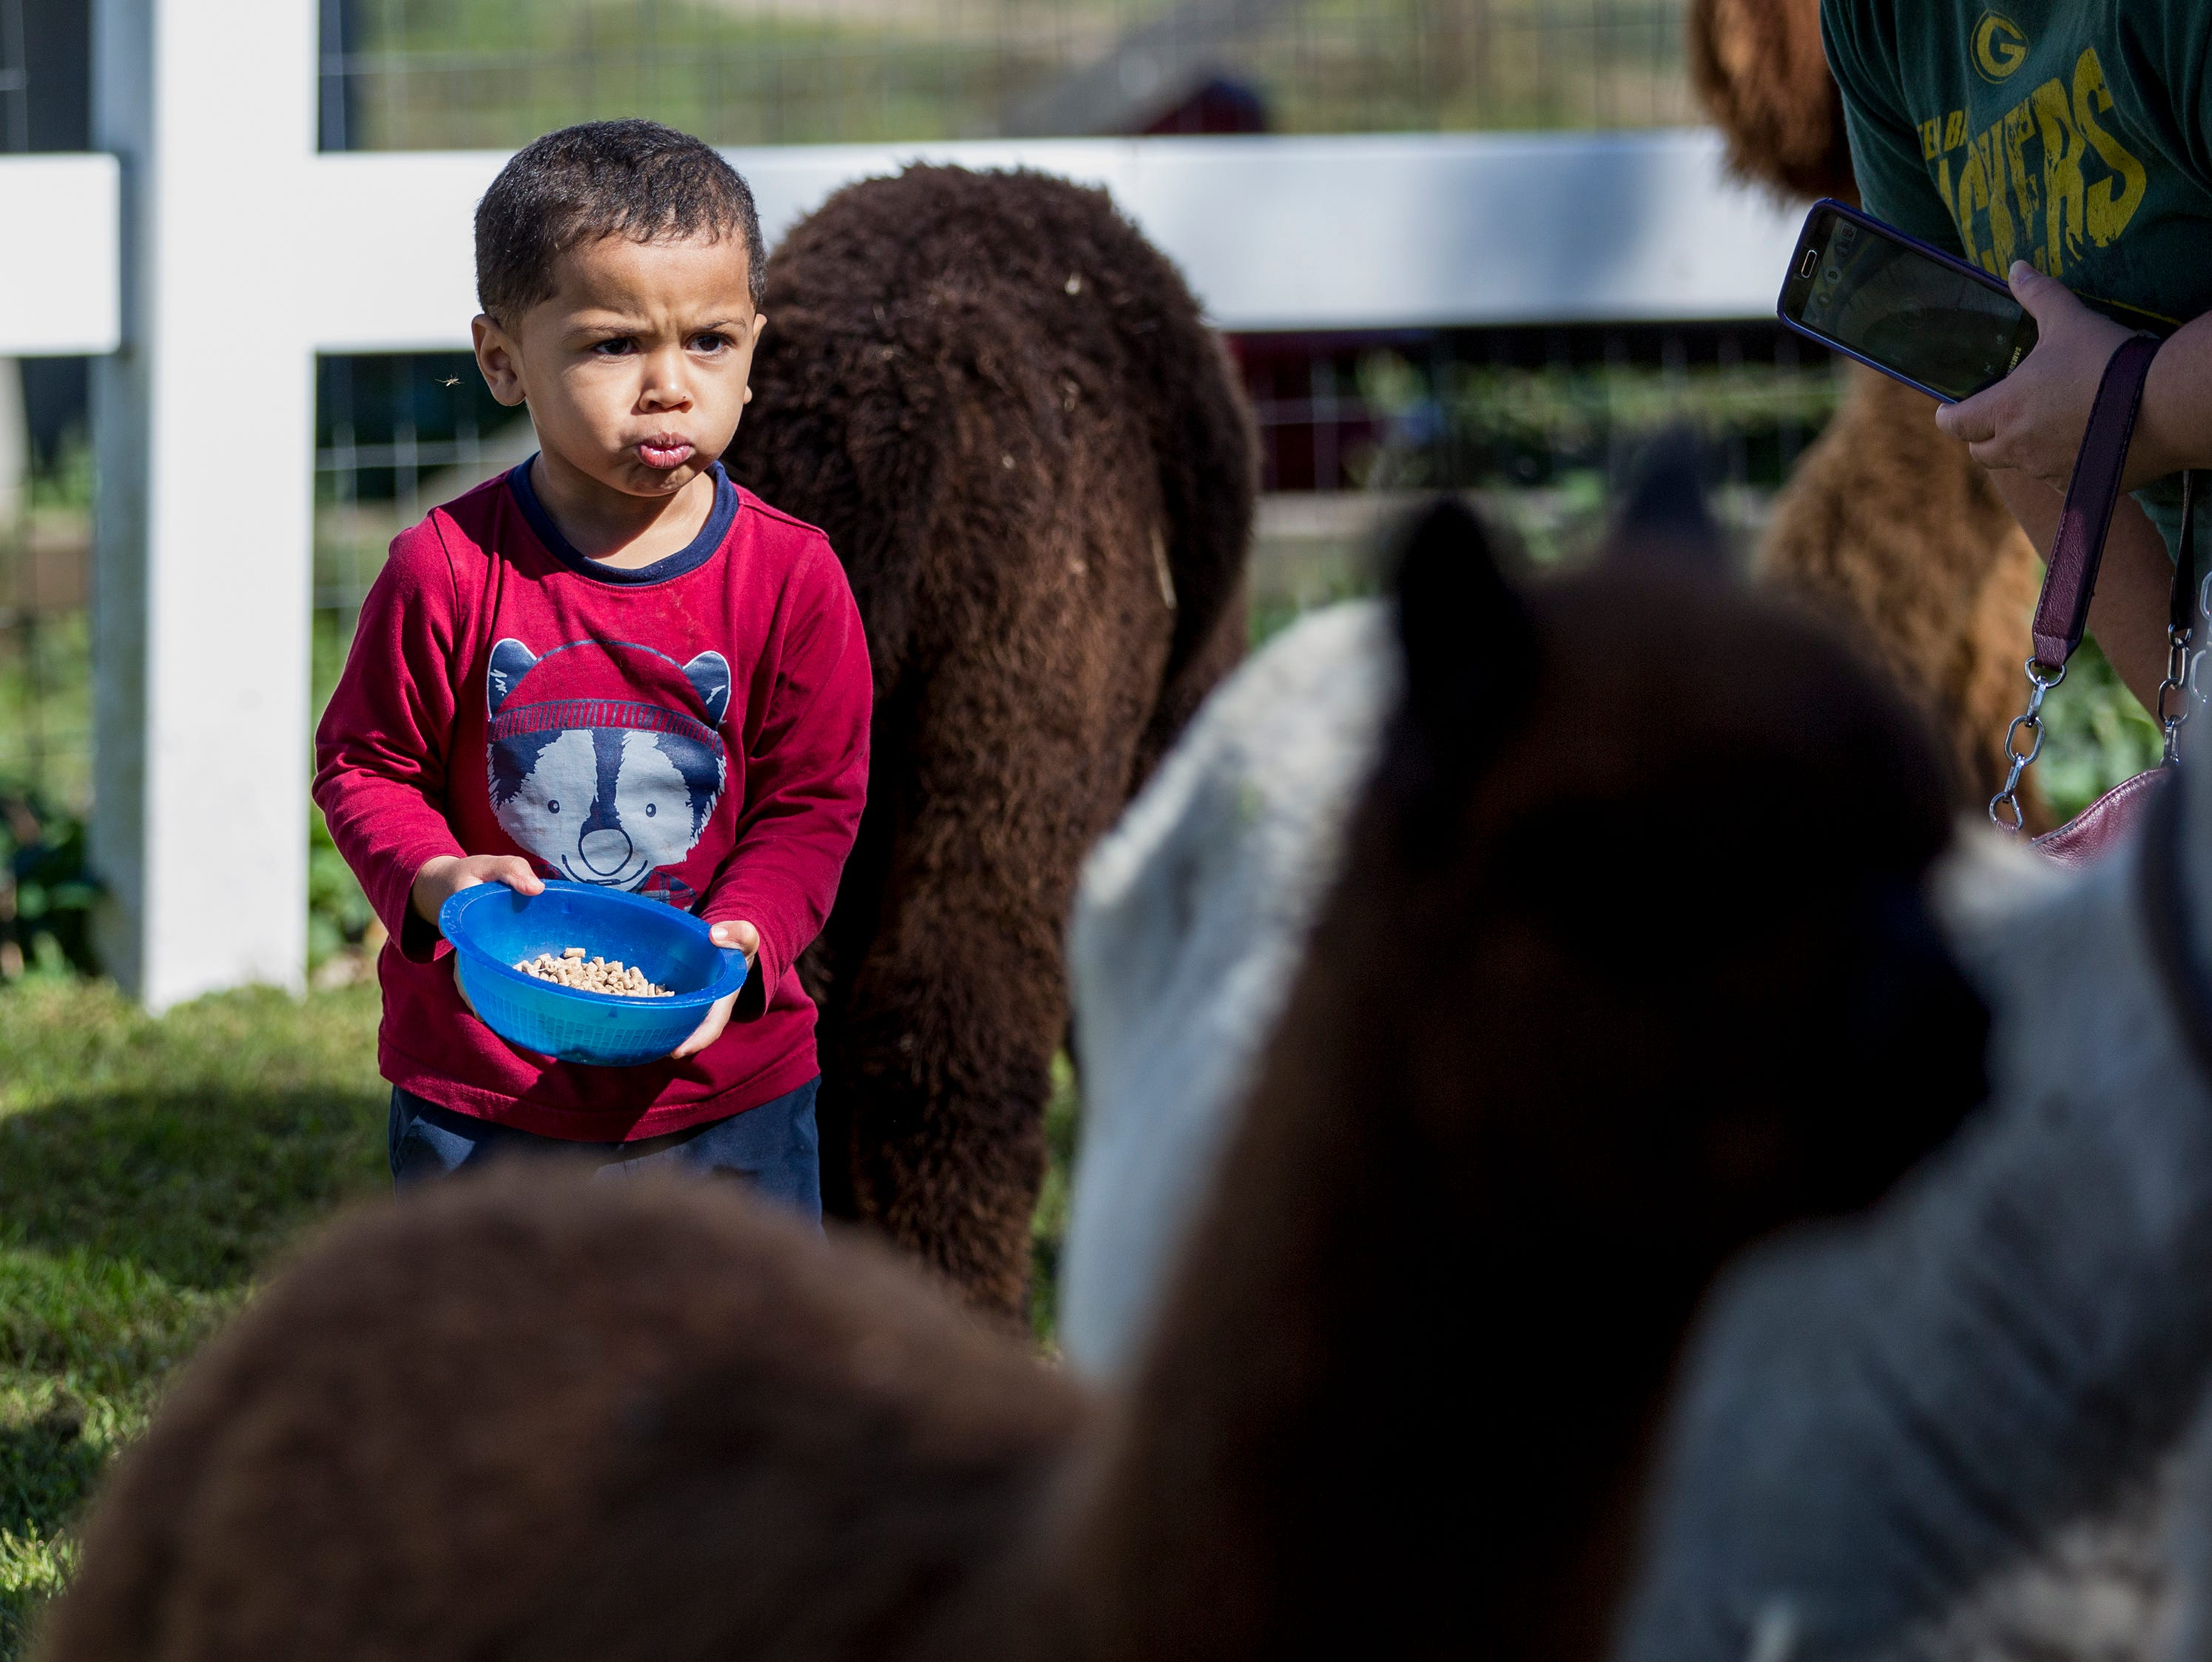 Milo Revees, 2, of Manitowoc, attempts to feed some alpacas during National Alpaca Days at LondonDairy Alpaca Ranch Saturday, September 22, 2018, in Two Rivers, Wis. Josh Clark/USA TODAY NETWORK-Wisconsin